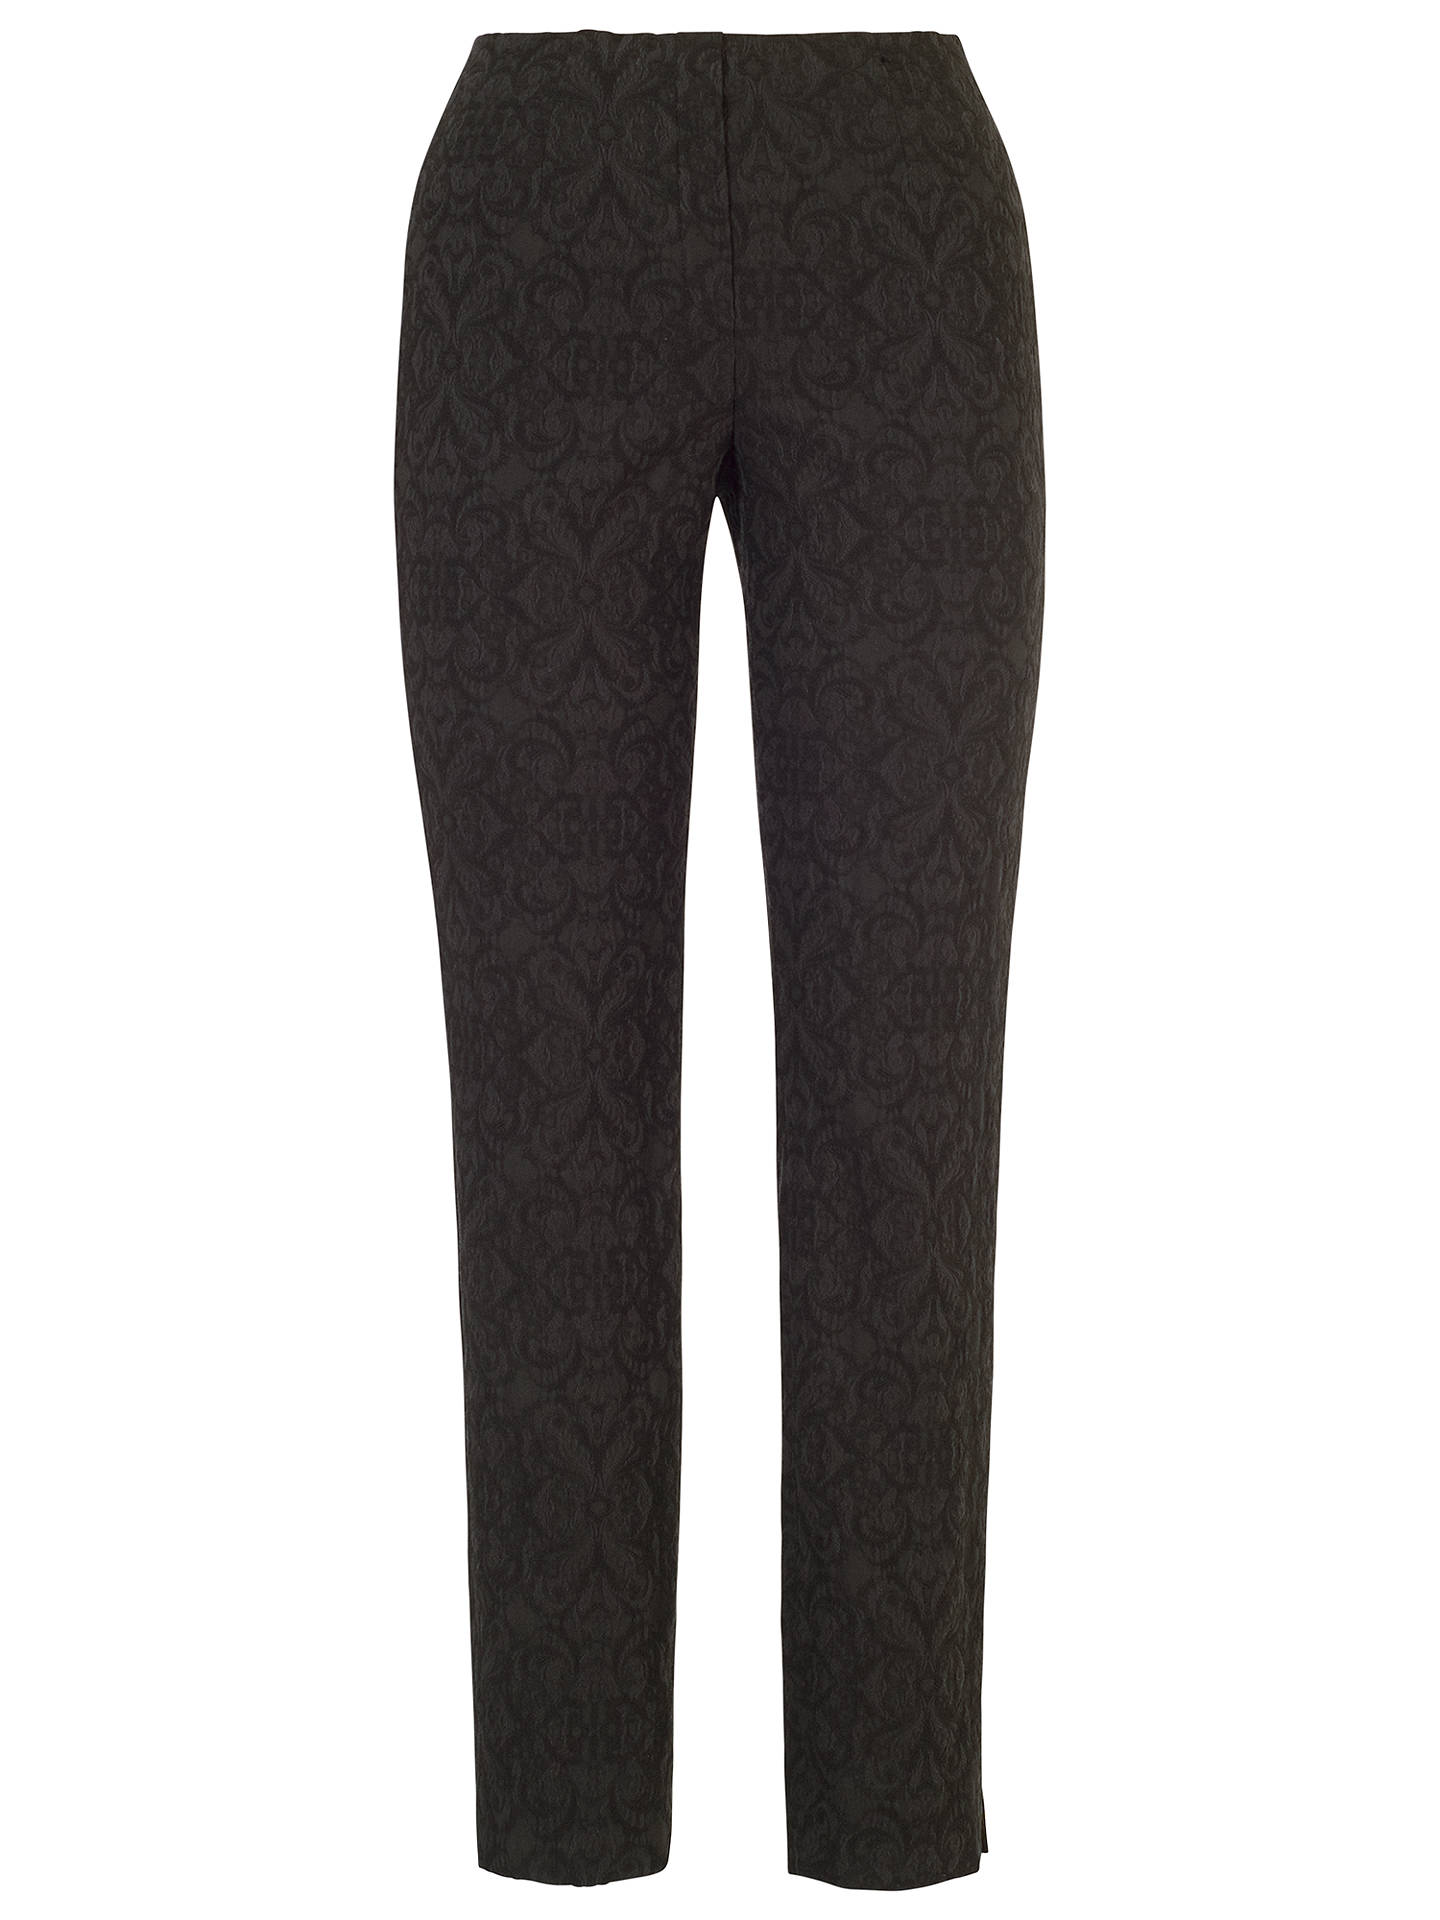 BuyChesca Jacquard Slim Stretch Trousers, Black, 14 Online at johnlewis.com